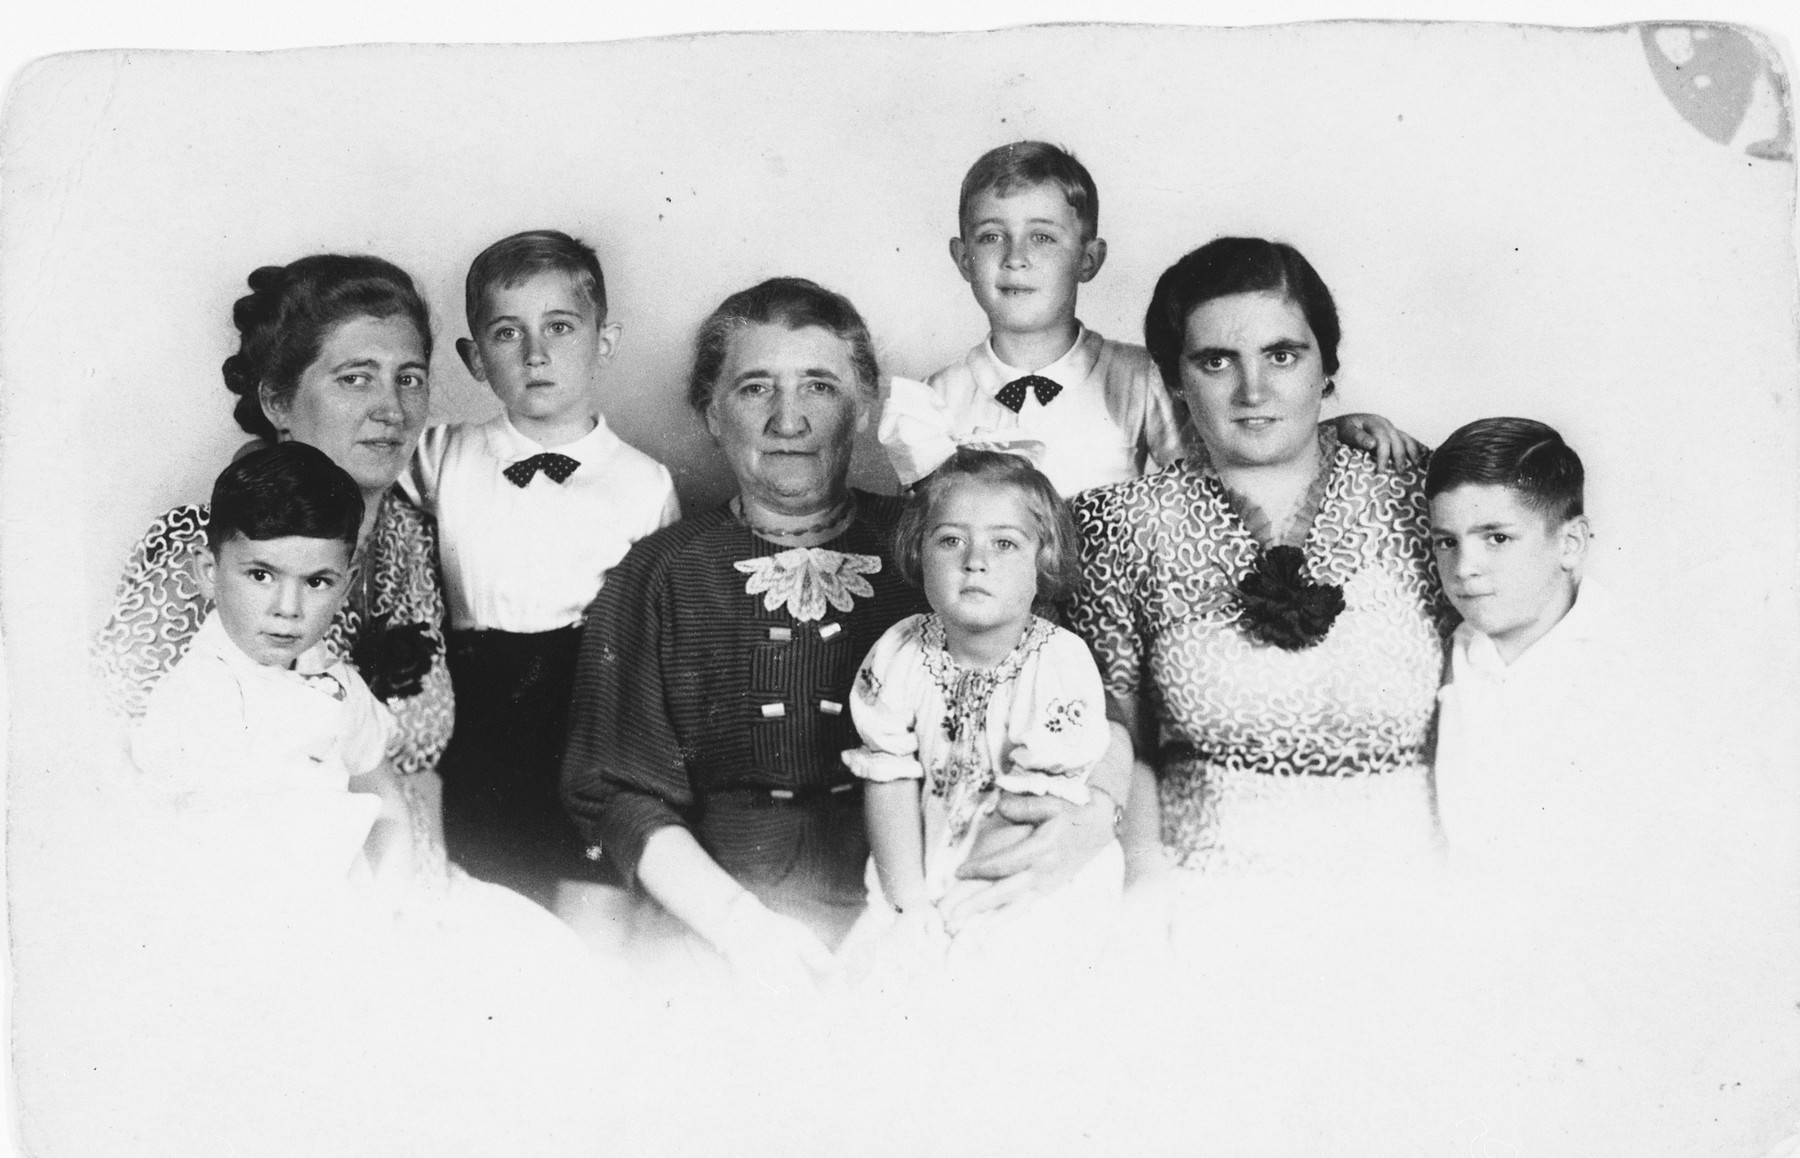 """Prewar portrait of a Jewish family.  Pictured in the center is Sophia (nee Wolff) de Jong.  Her daughtersJudith (""""Juul"""") (nee de Jong) Vos and Louise (""""Wies"""") (nee de Jong) Israels are pictured on the left and right, respectively.  Judith's children are Hans and Louk (pictured in  standing in the back, left and right respectively), and Phia (on her grandmother Sophia's lap).  Louise's children are Loekie (front, far left) and Nico (front, far right)."""